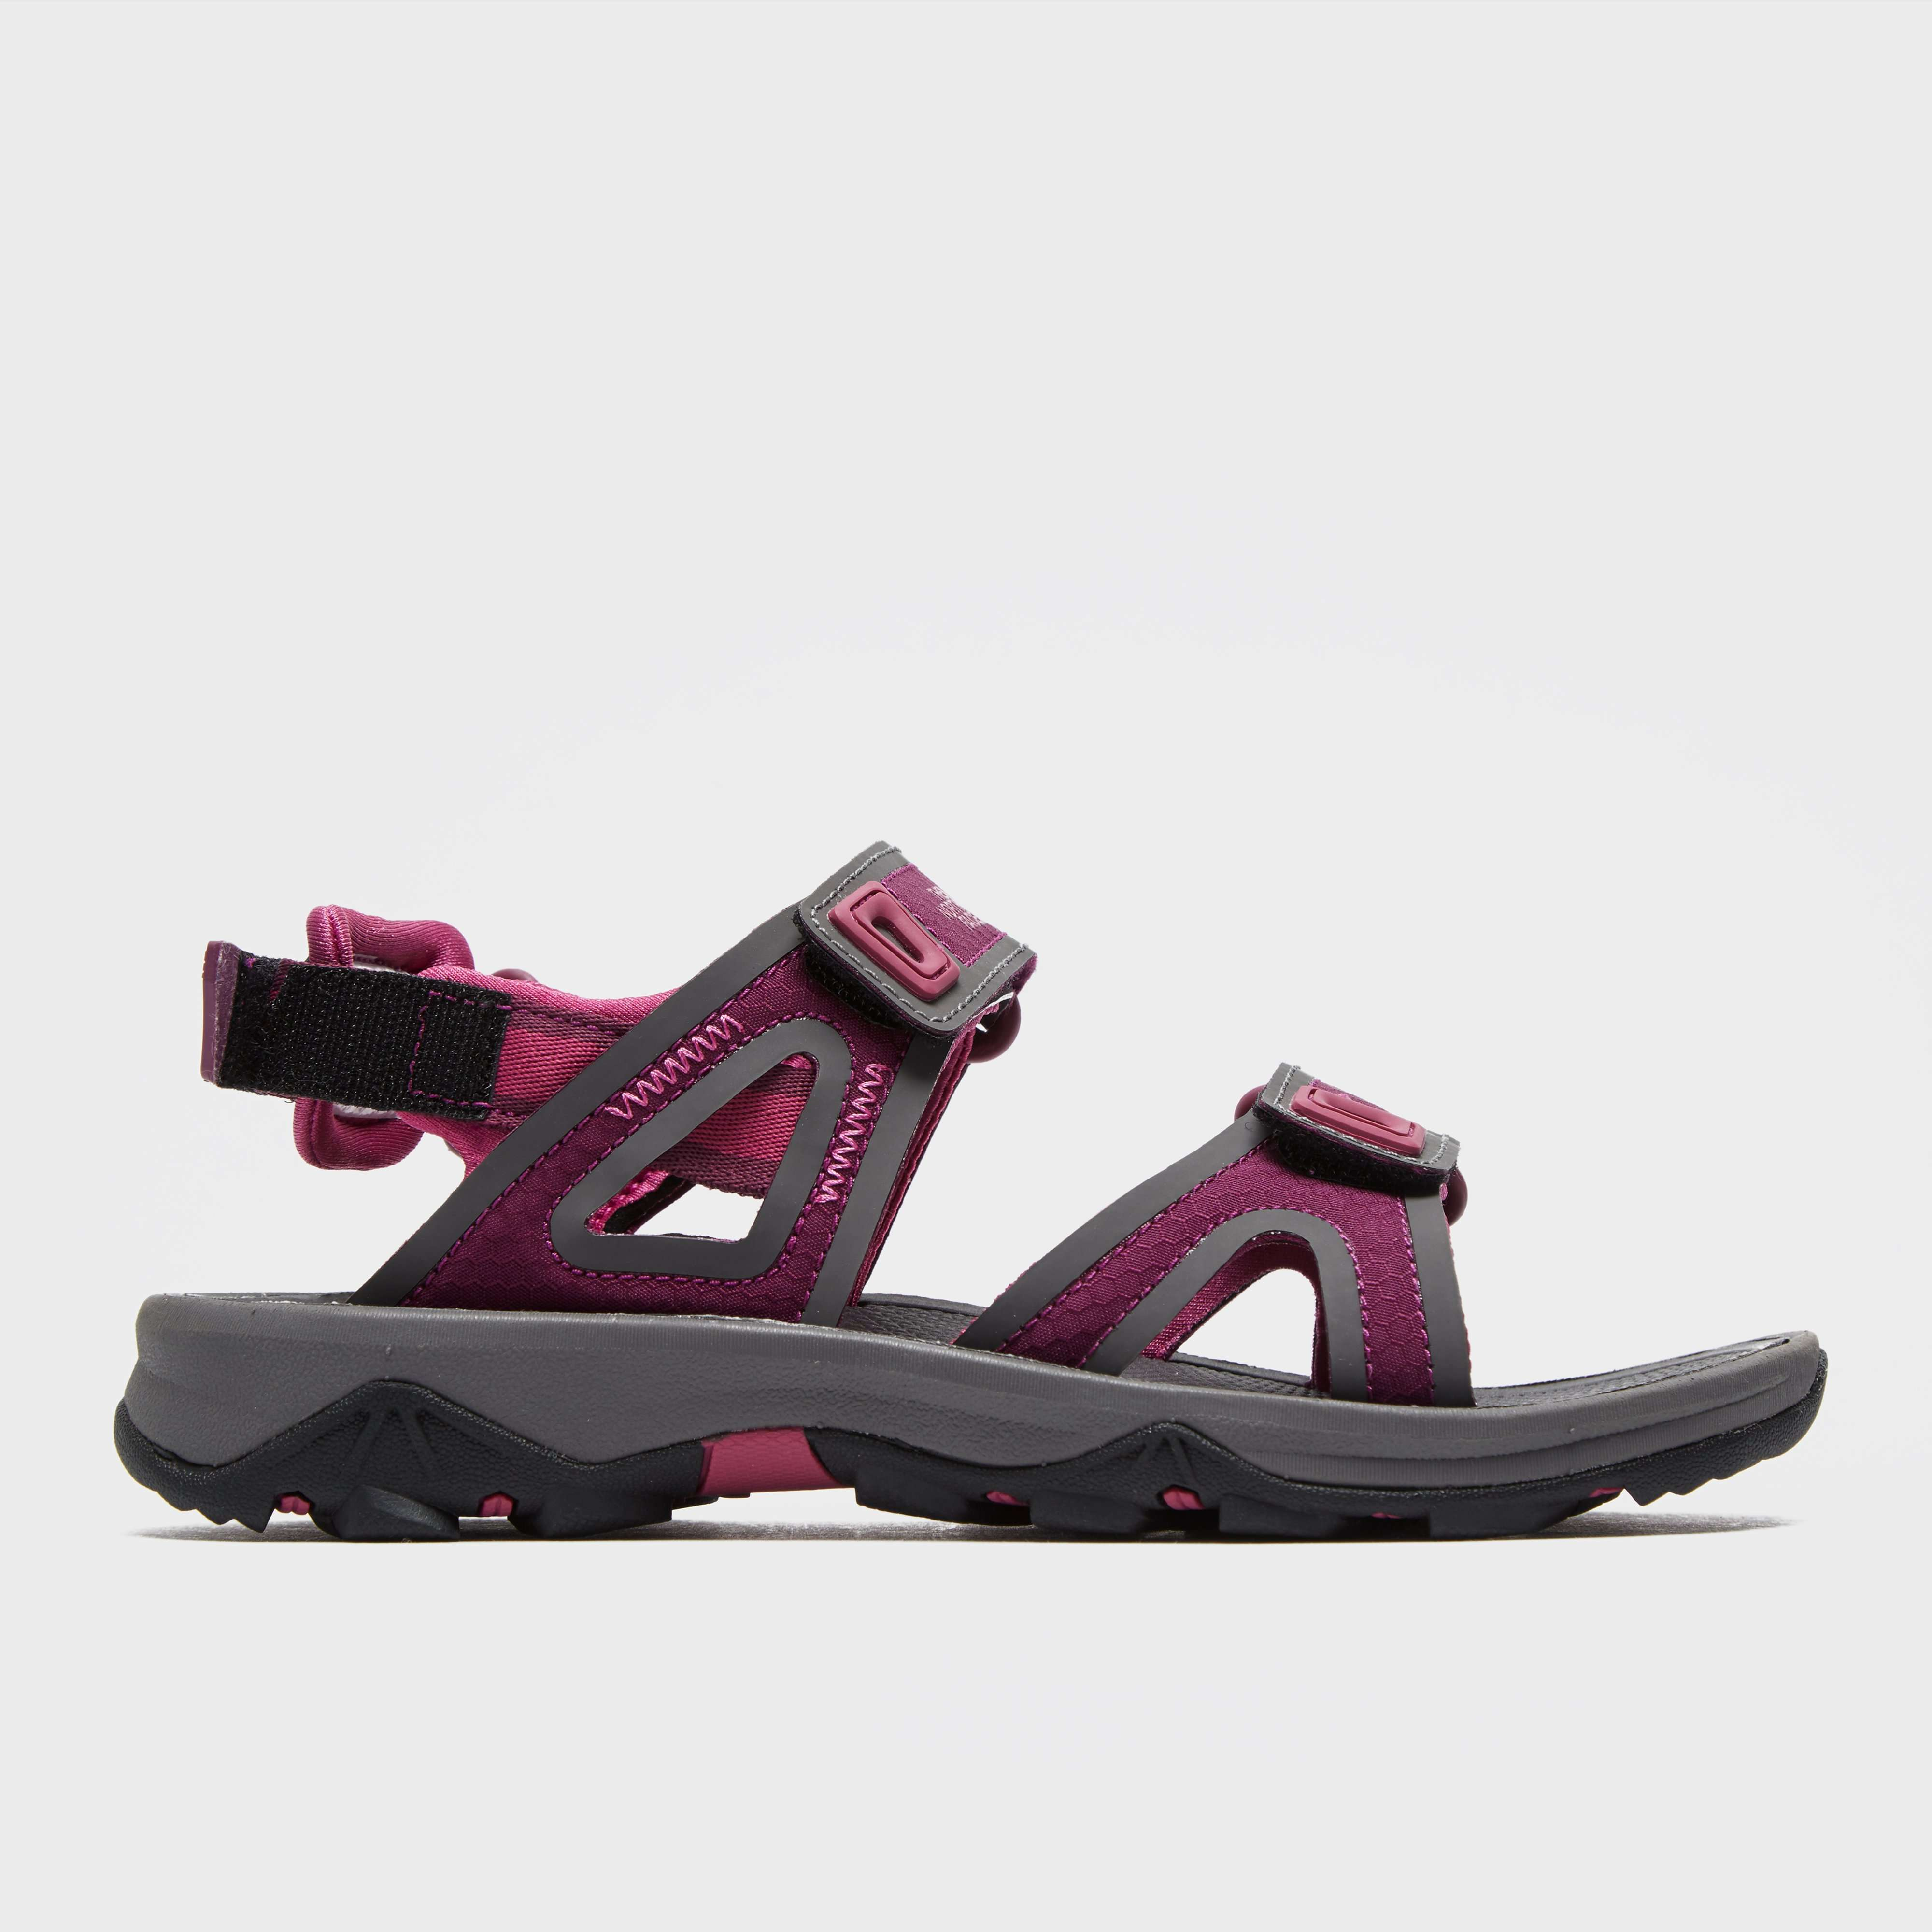 THE NORTH FACE Women's Hedgehog Sandals